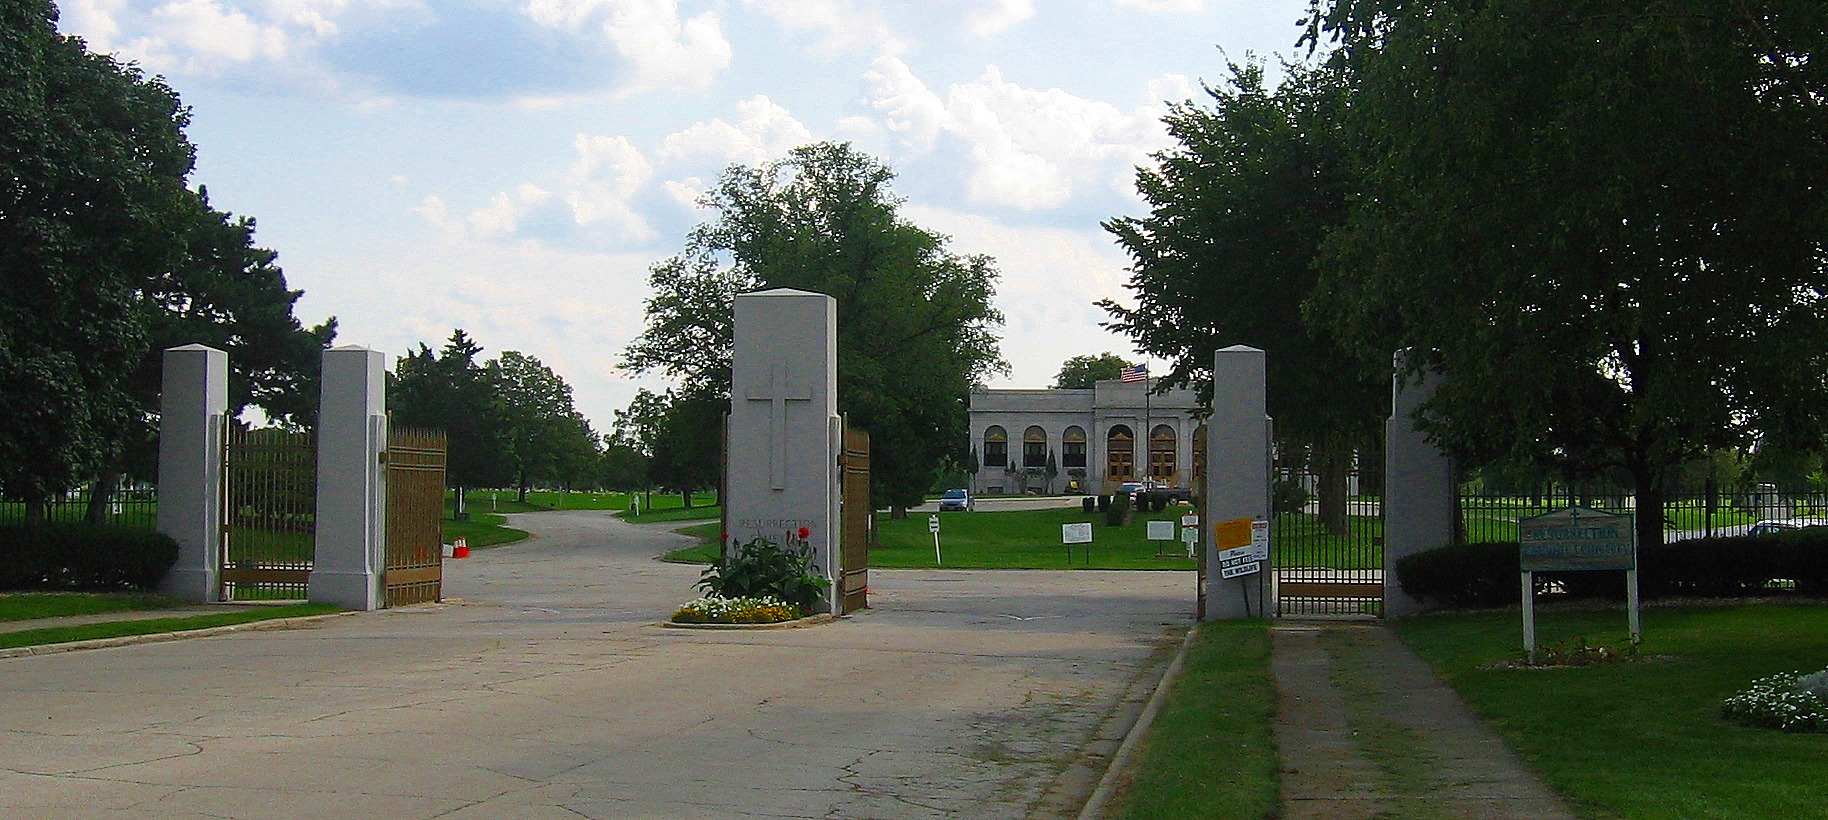 """Front gate of Resurrection Cemetery, photo by """" MrHarman"""" at the   English language Wikipedia under  Creative Commons  Attribution-Share Alike 3.0 Unported"""